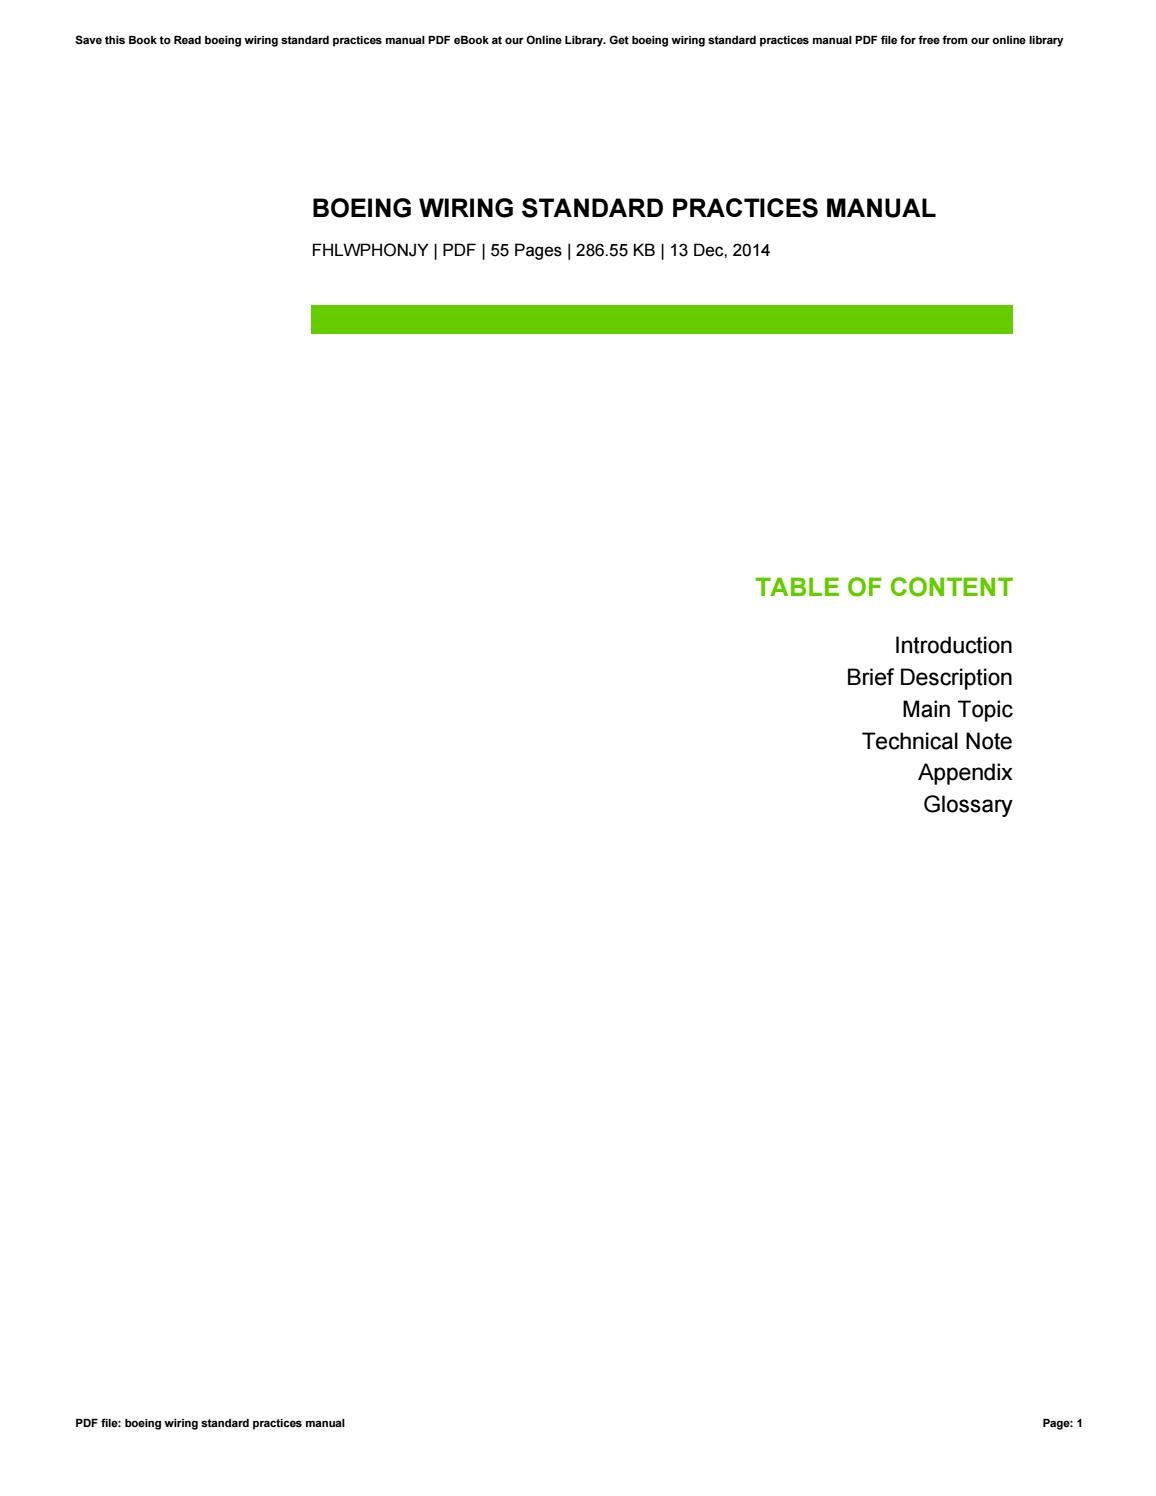 Boeing Wiring Standard Practices Manual By